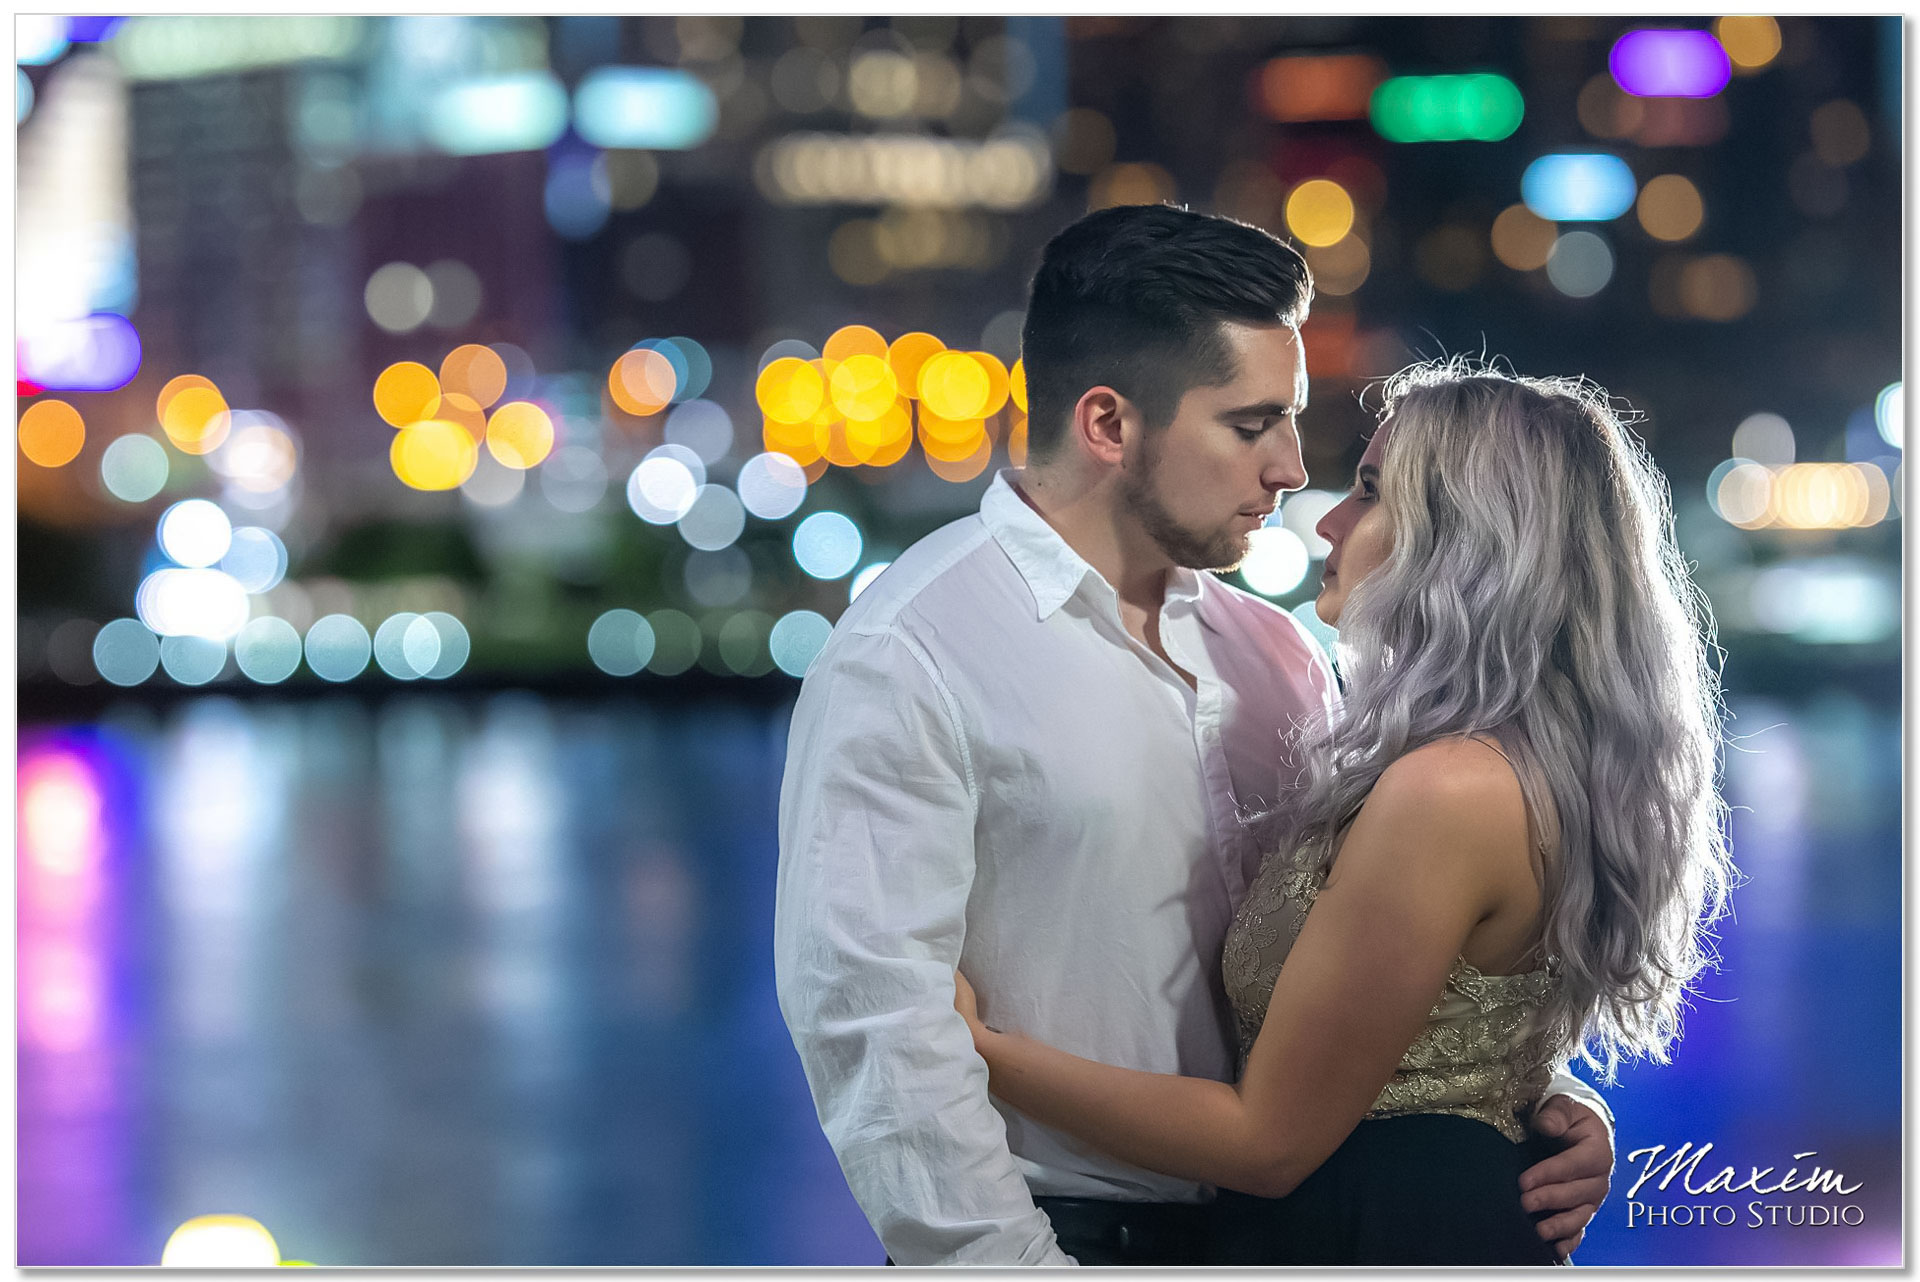 Romantic night Cincinnati engagement